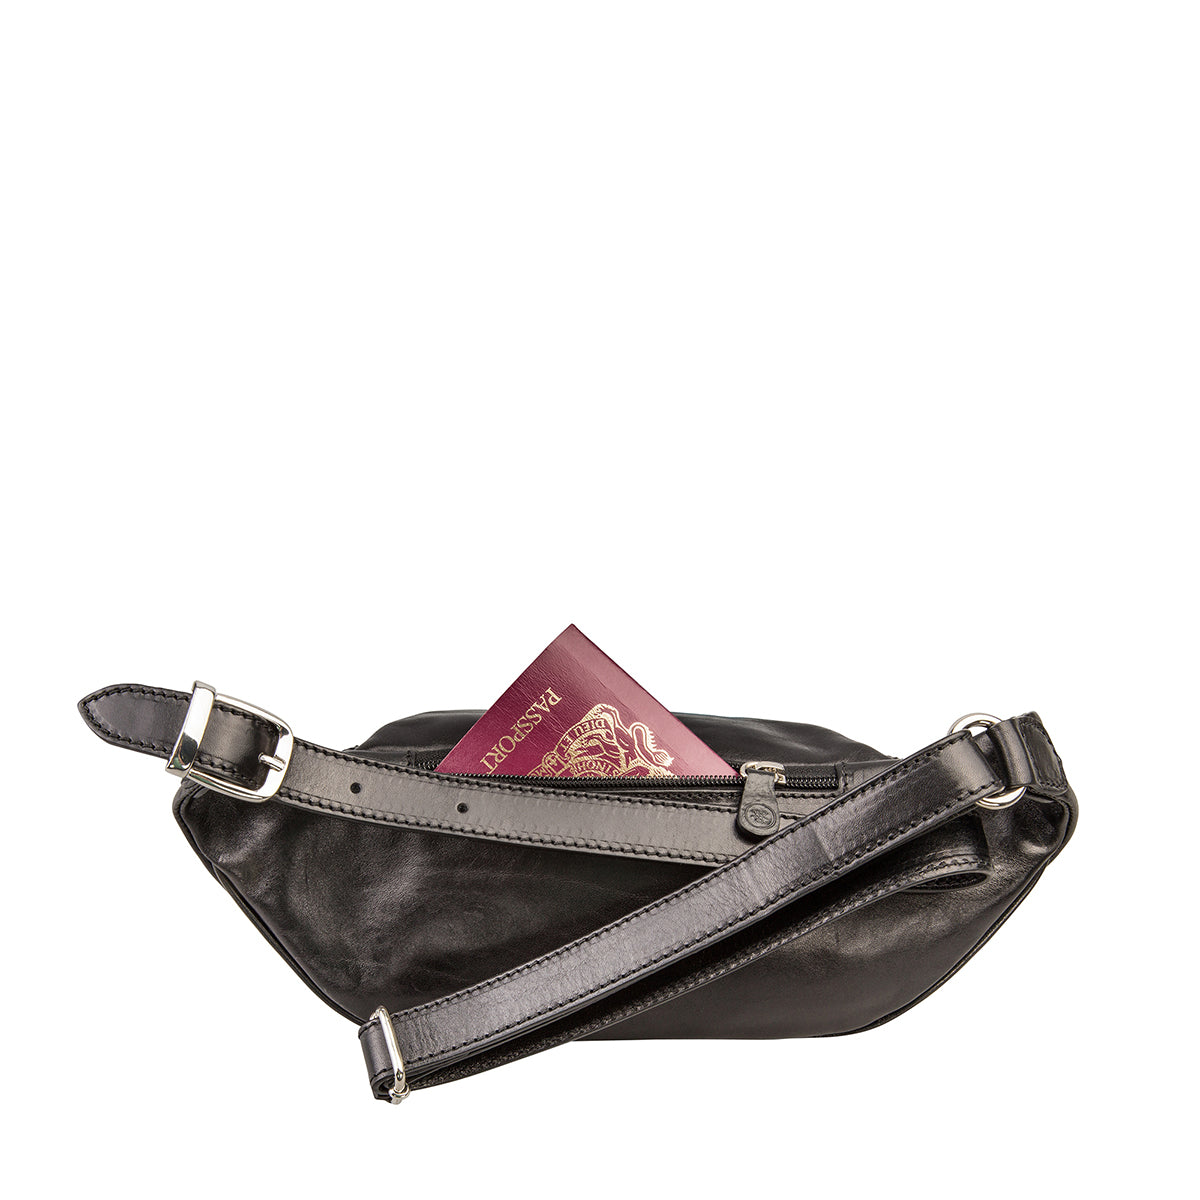 Image 3 of the 'Centolla' Black Veg-Tanned Leather Waist Bag